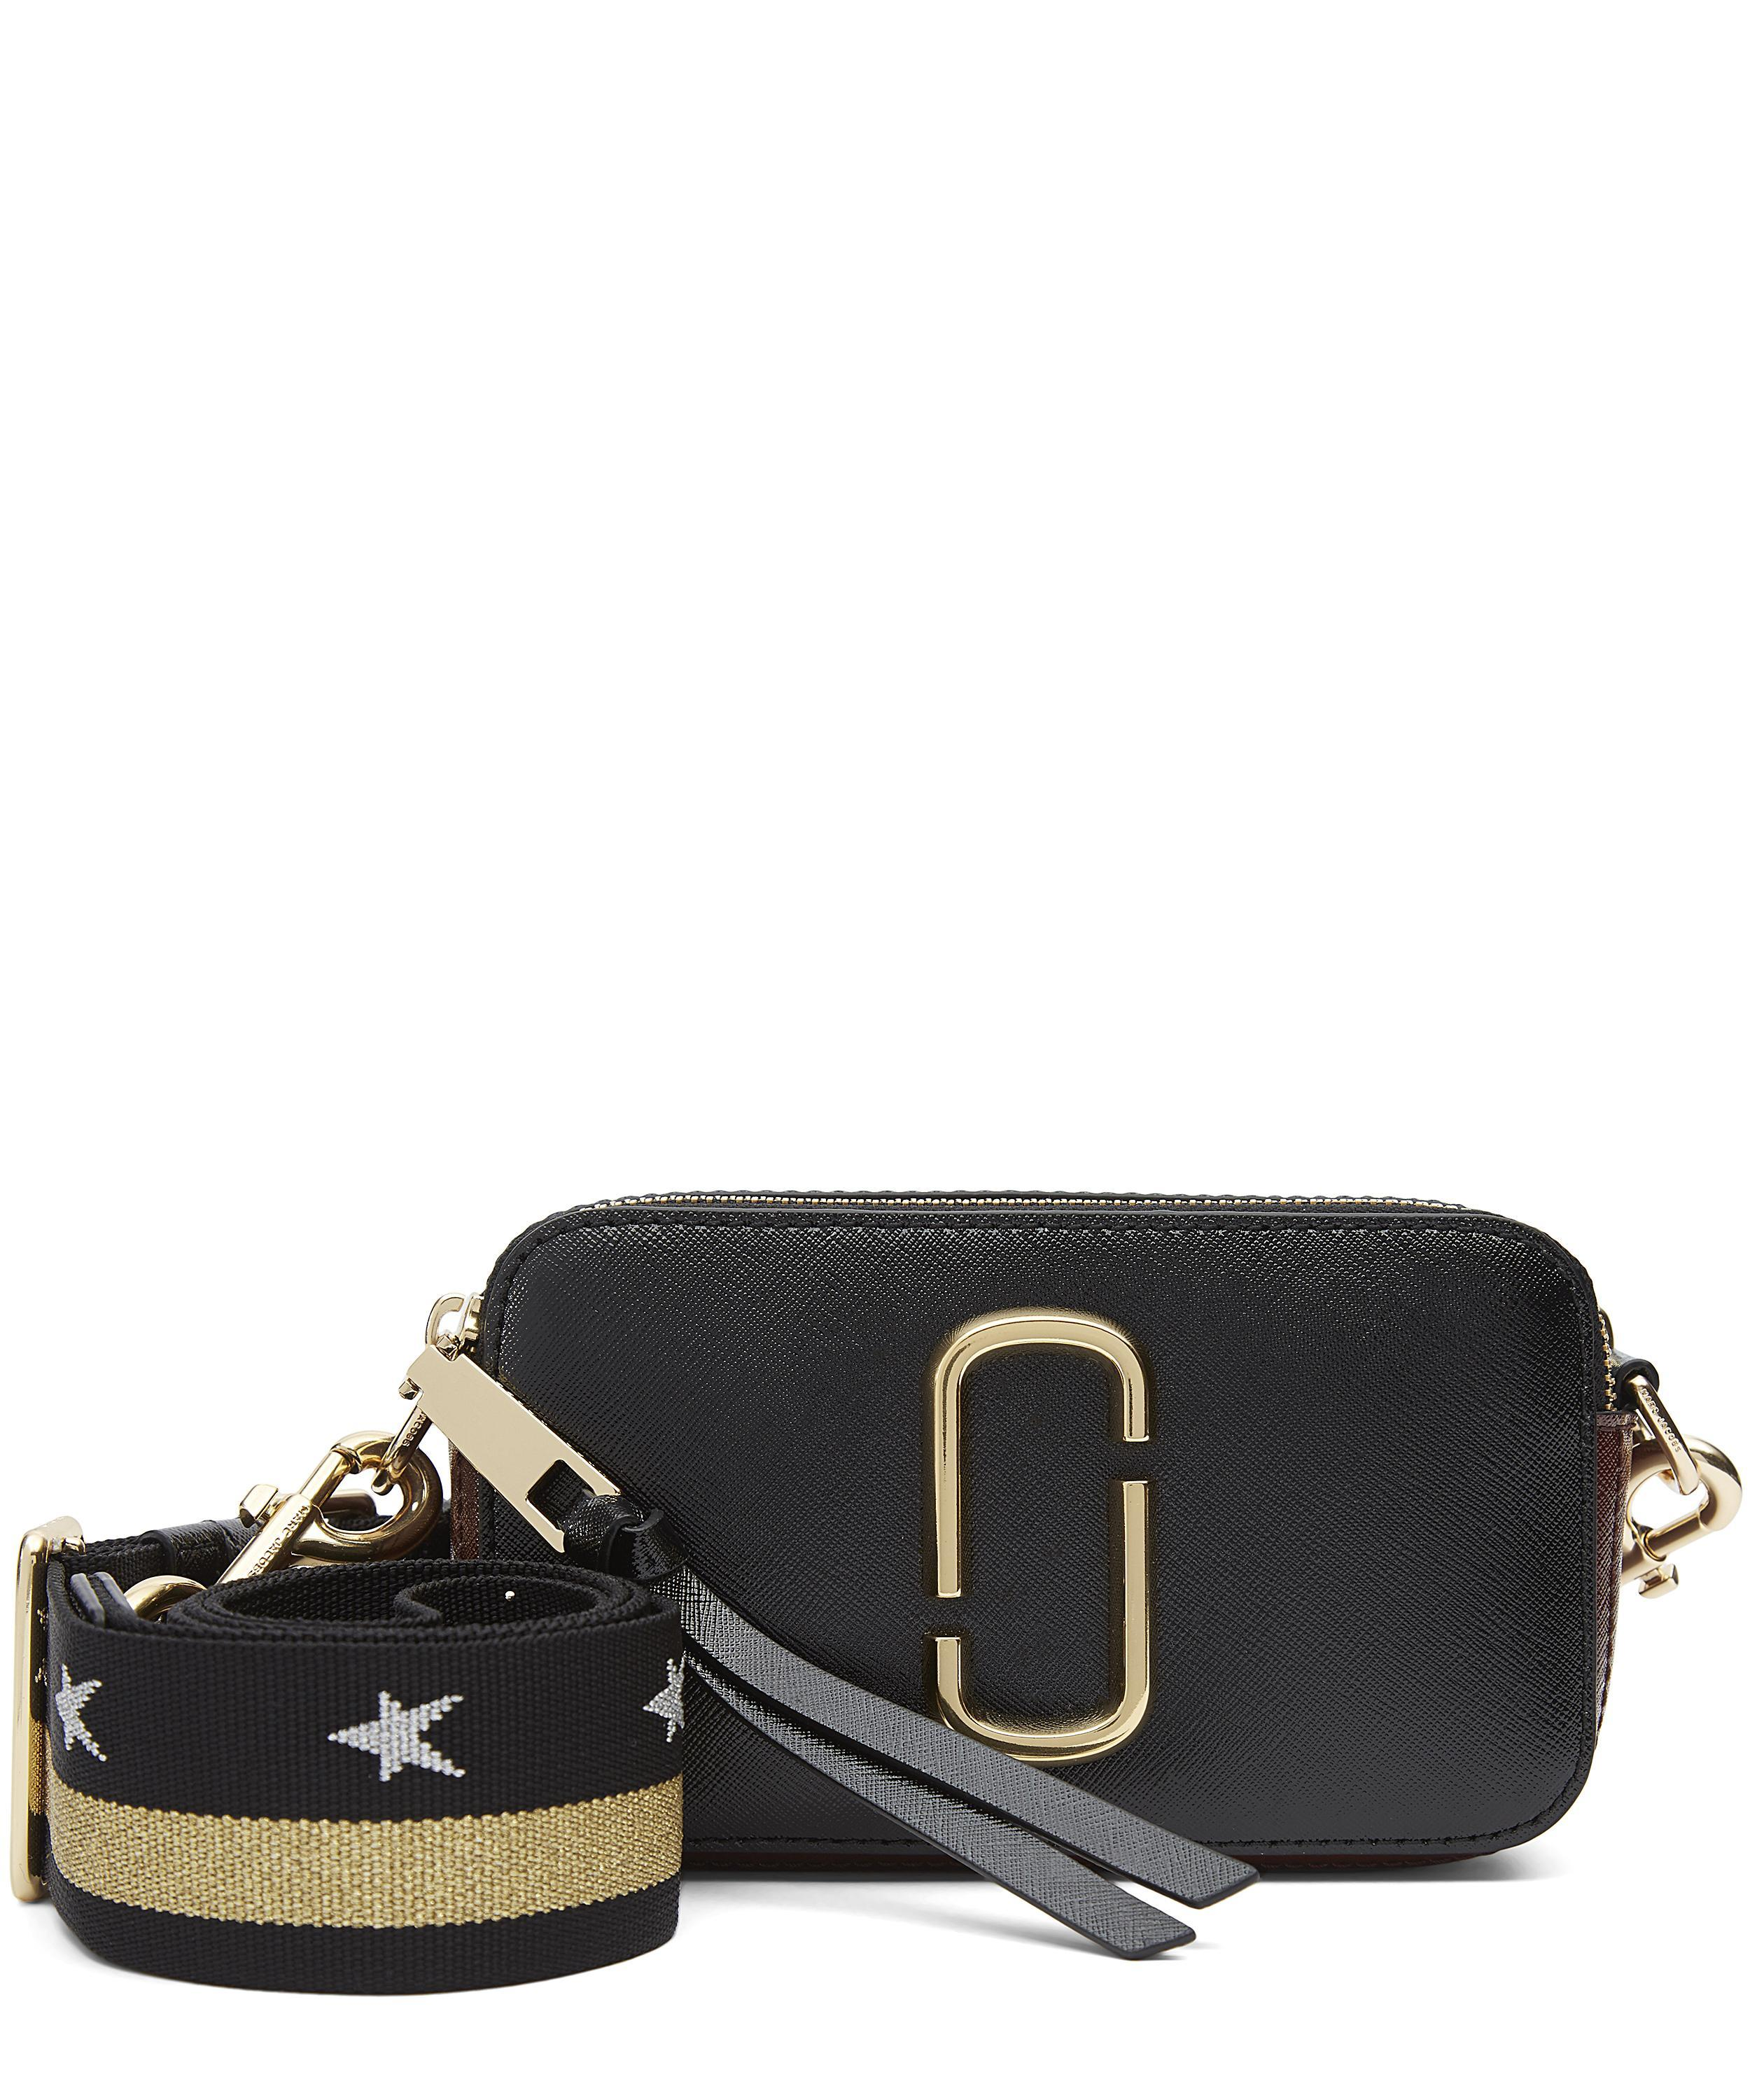 Marc Jacobs Leather Snapshot Small Camera Crossbody Bag Black